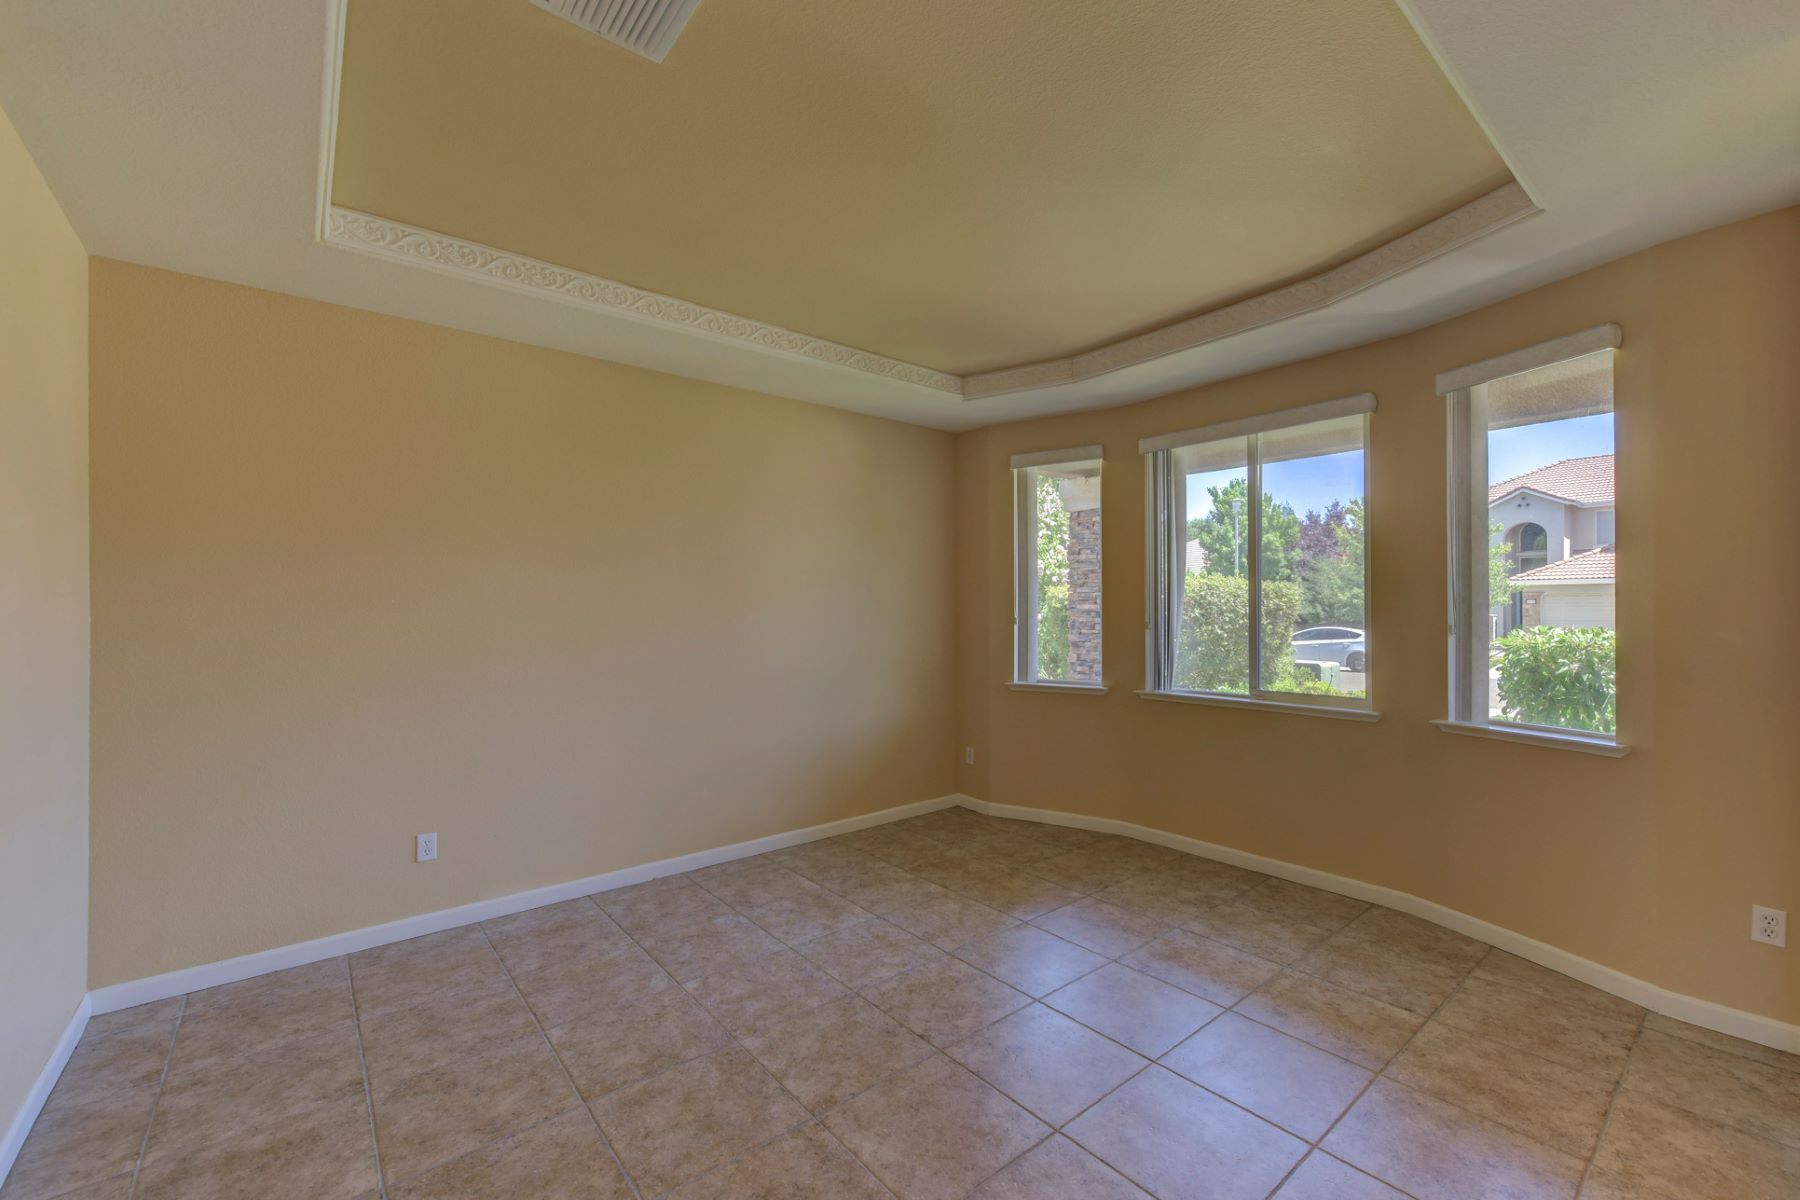 Single Family Home for Sale at 6938 Rawley Way, Elk Grove, CA 95757 Elk Grove, California, 95757 United States